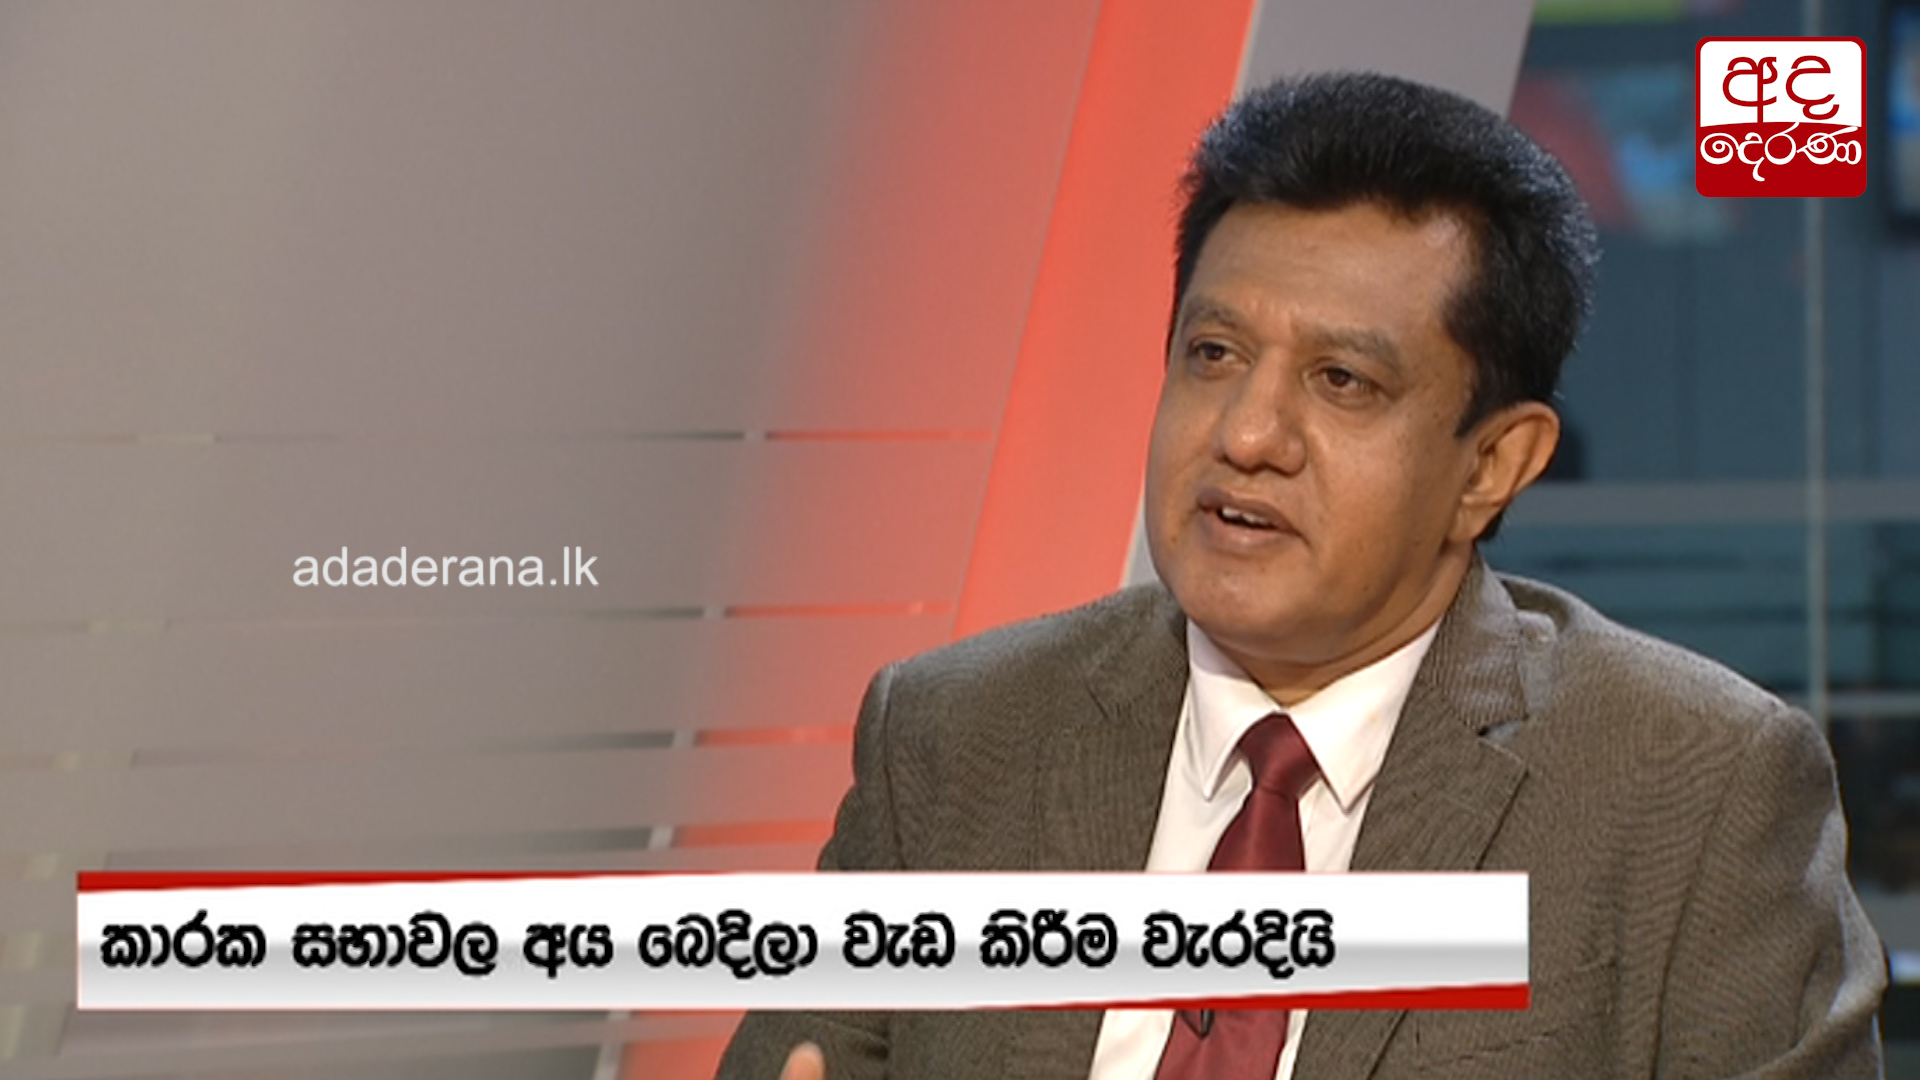 Will conduct COPE investigations independently – Prof. Charitha Herath